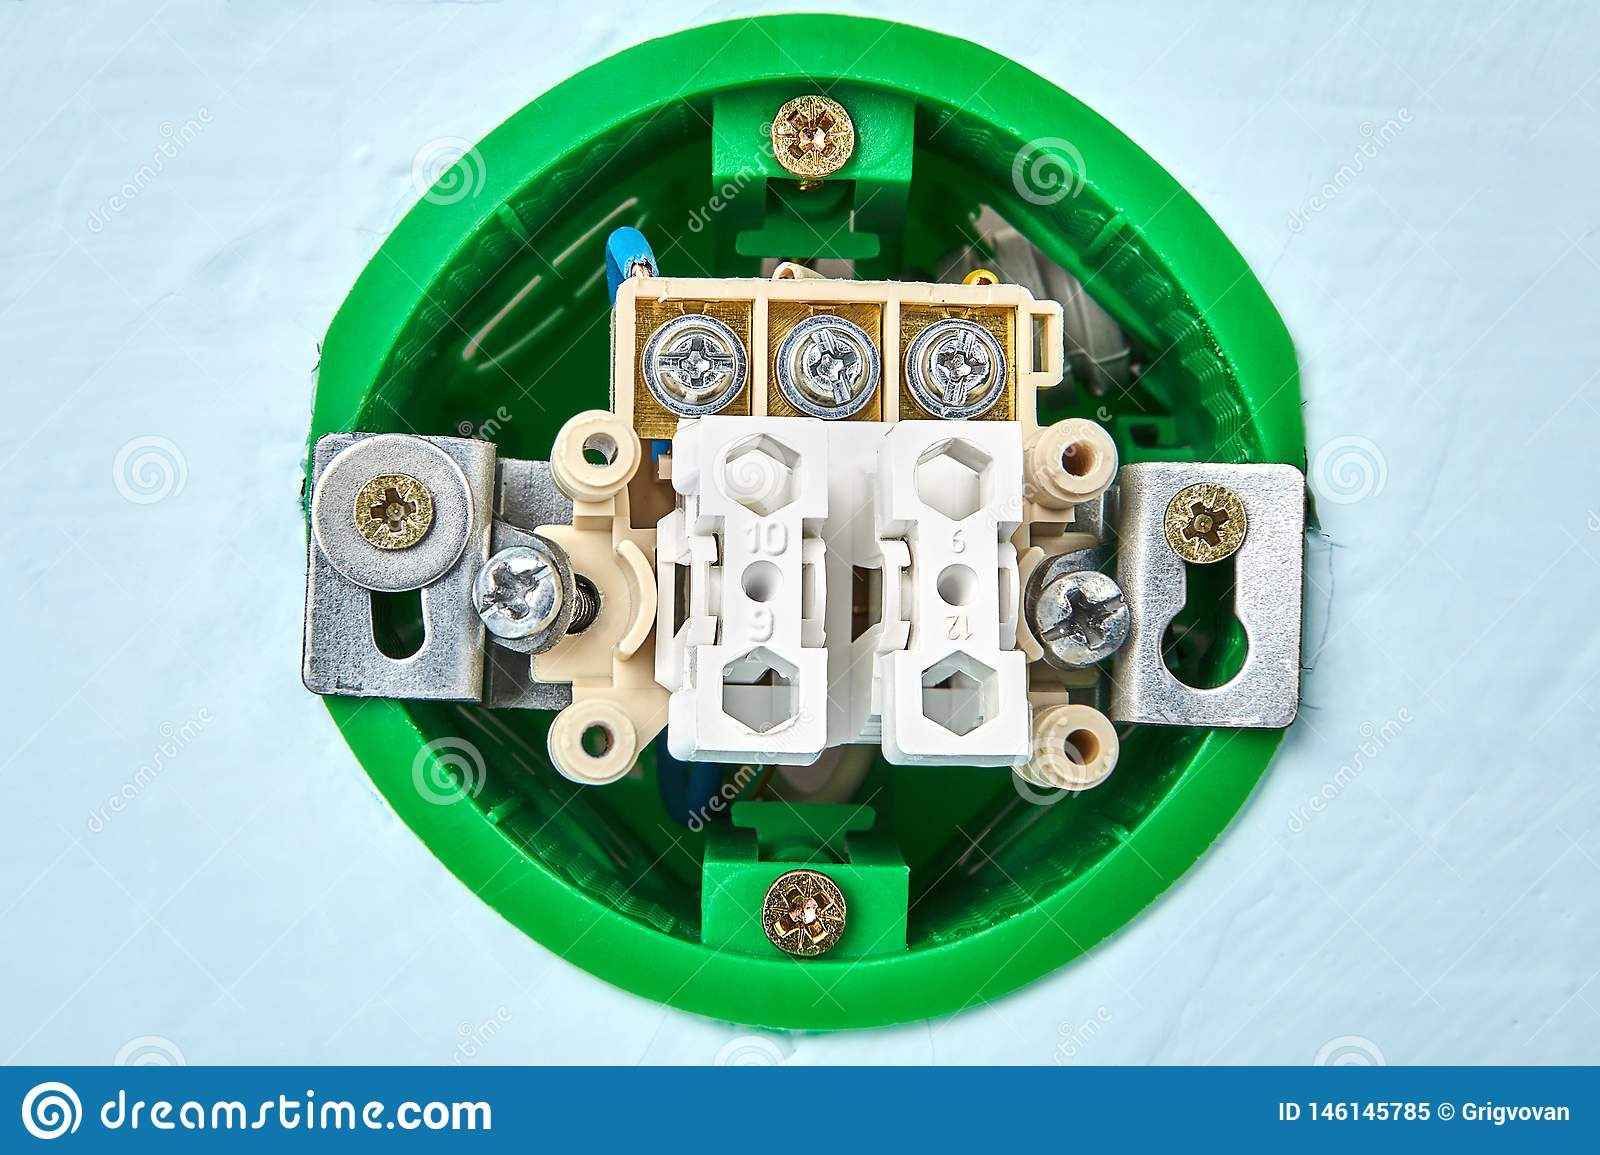 Installation Of New Double Light Switch Stock Image - Image